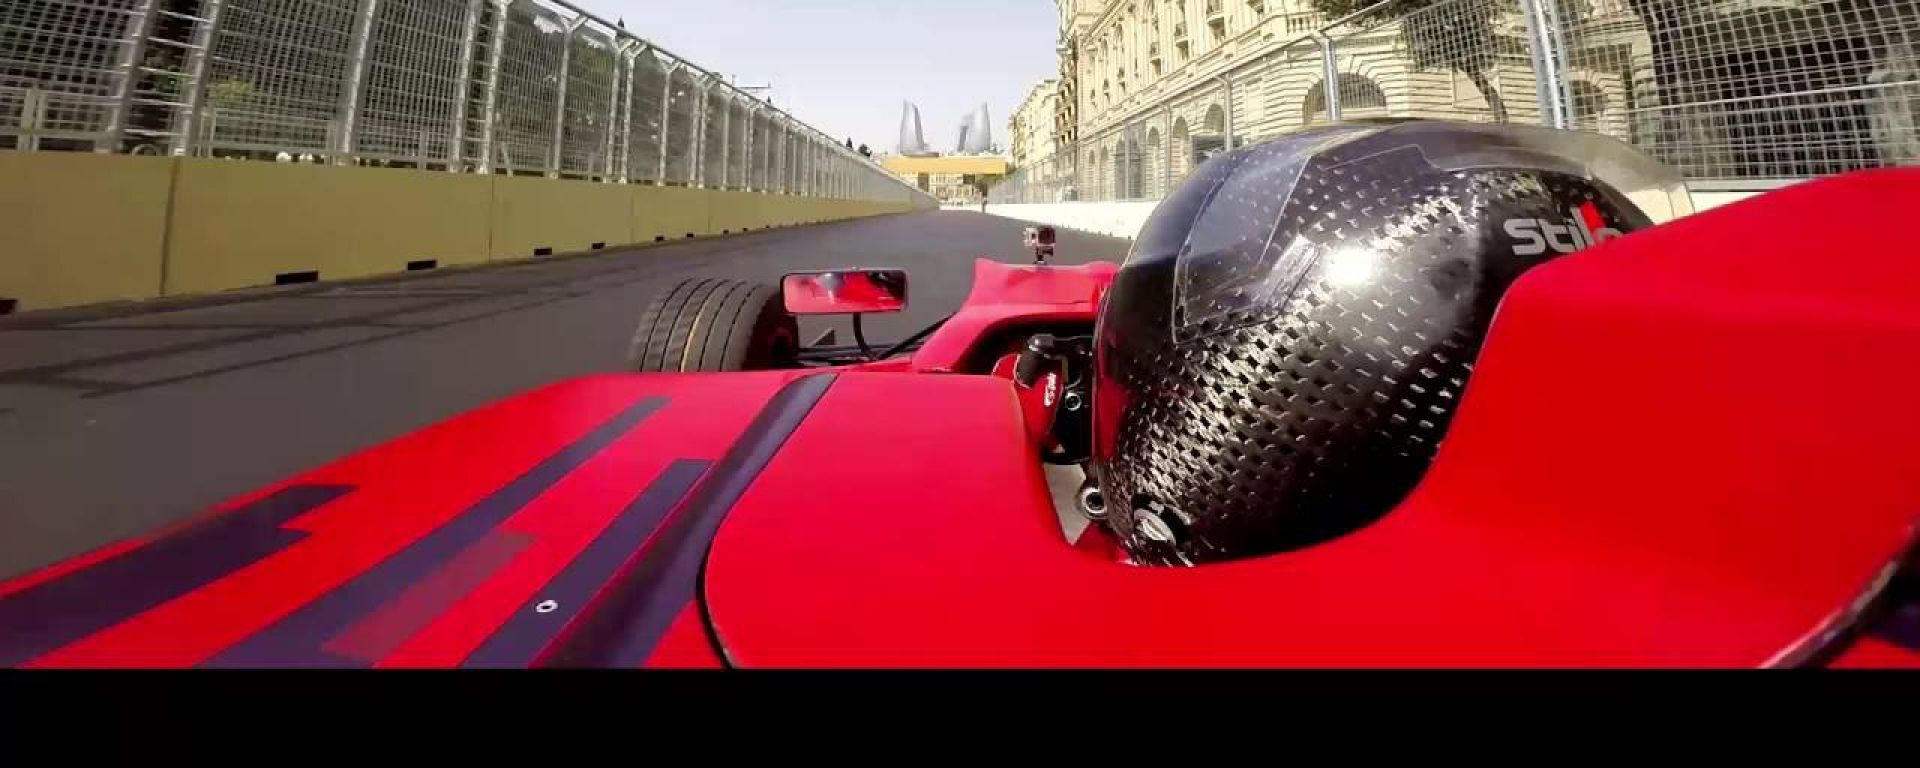 F1 GP Baku - Orari TV e TimeTable